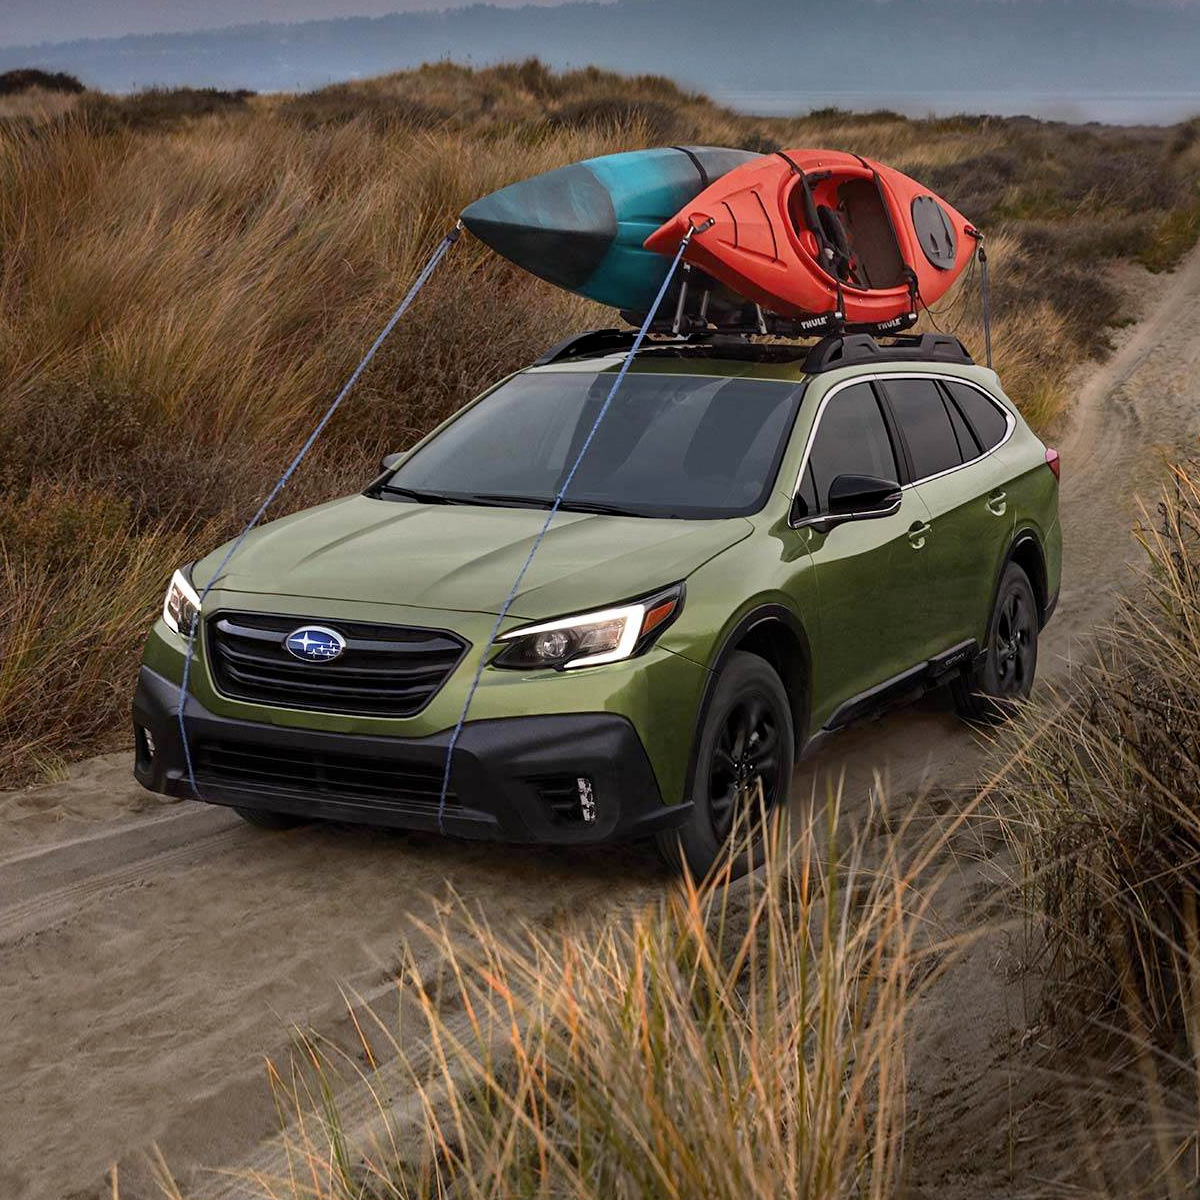 frontal profile of 2021 subaru outback in green color with kayaks on the roof rack driving through sand near a beach